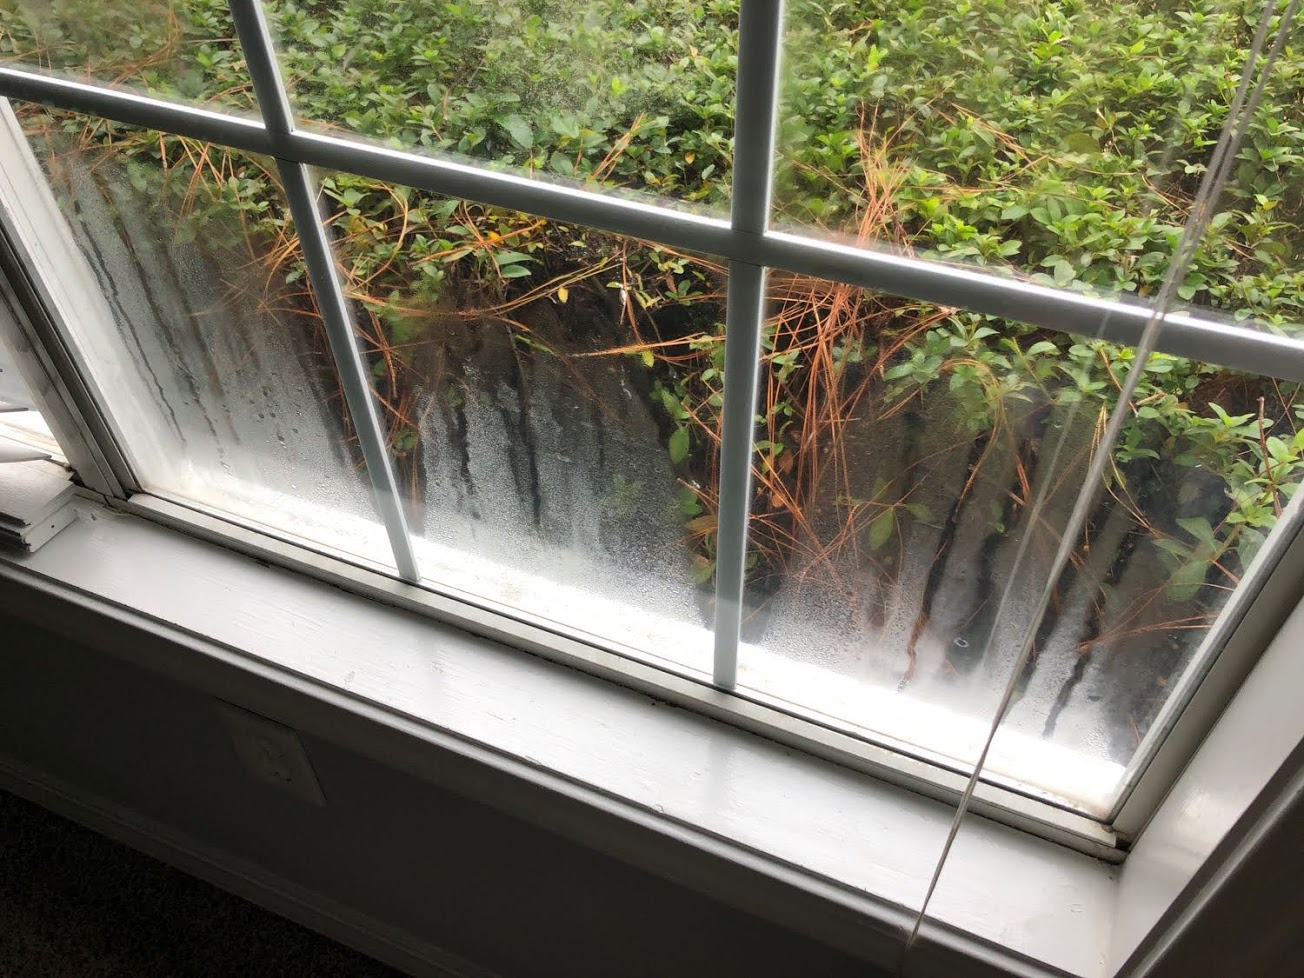 window with condensation present